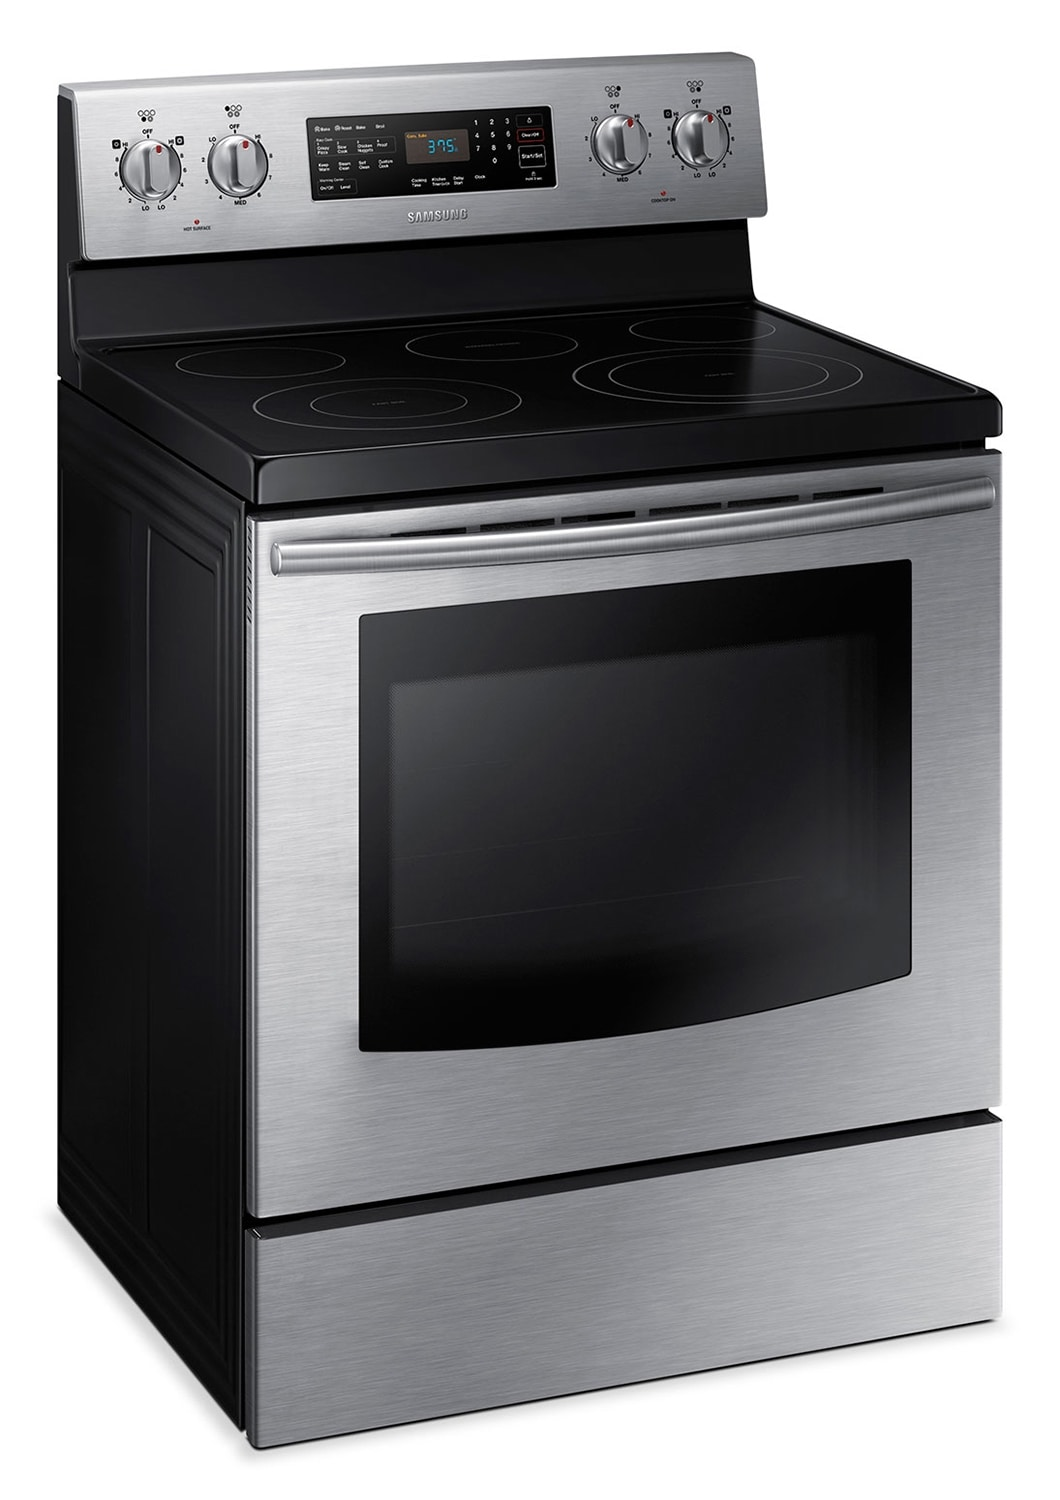 Electric Kitchen Stoves For Sale ~ Samsung electric ranges on sale free engine